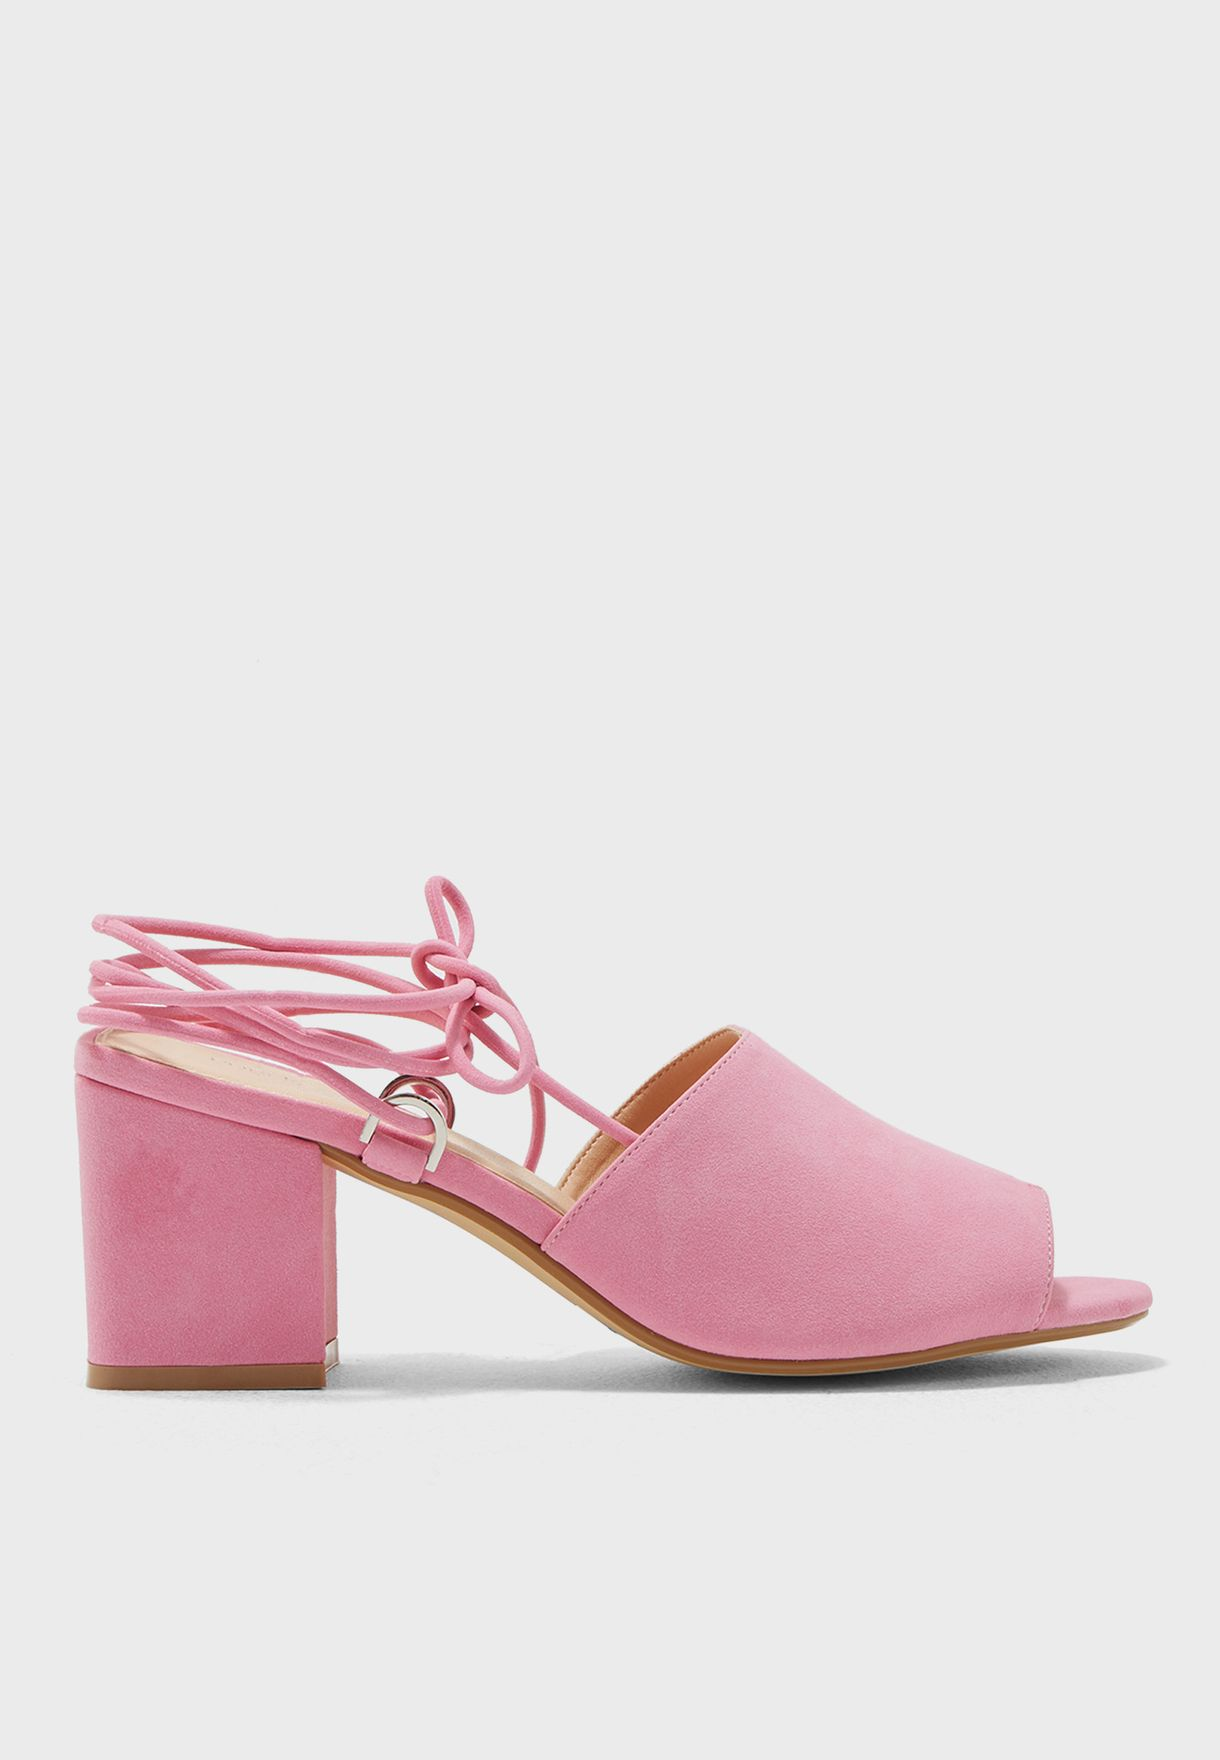 9bb9dc197a04 Shop Public Desire pink Paddington Low-Heel Sandals PADDINGTON for ...